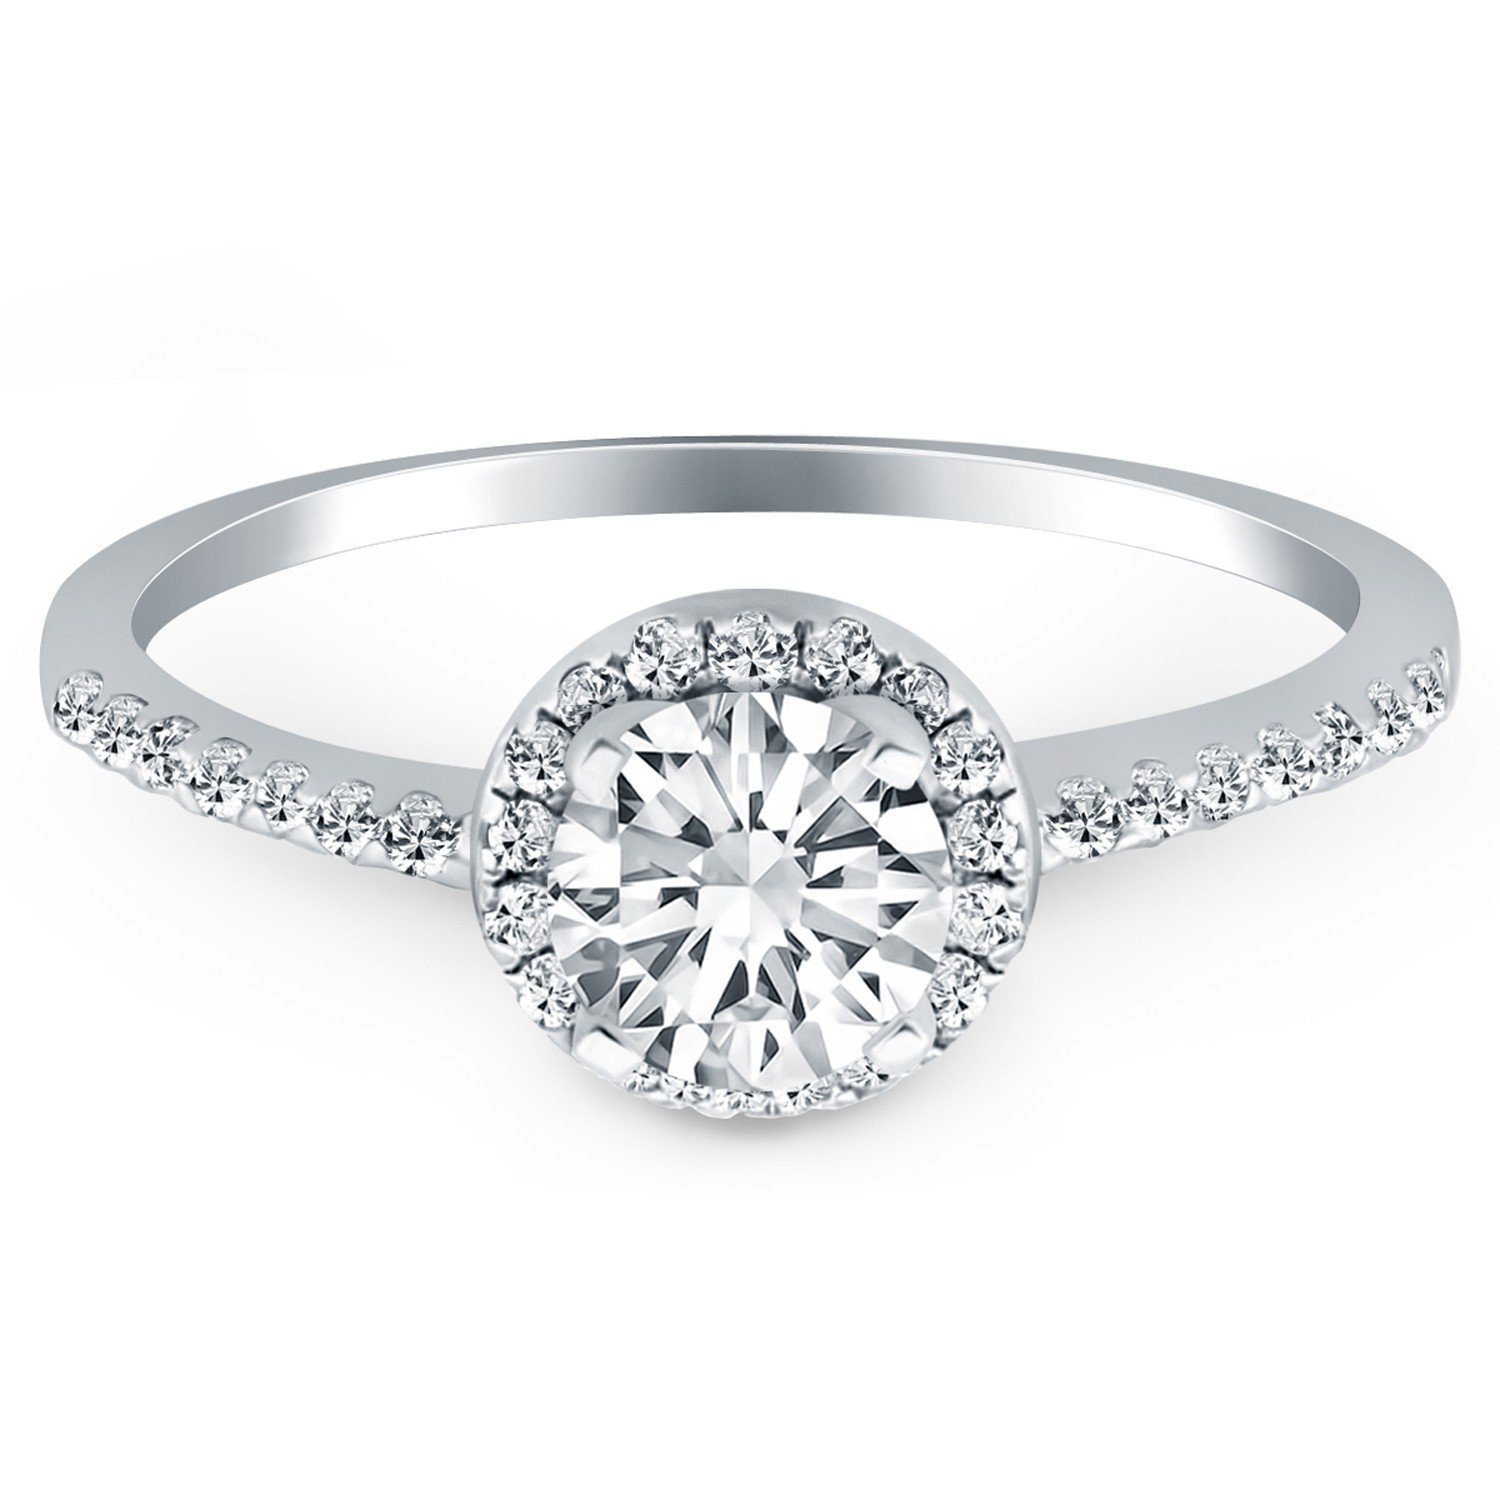 14k White Gold Diamond Halo Collar Engagement Ring